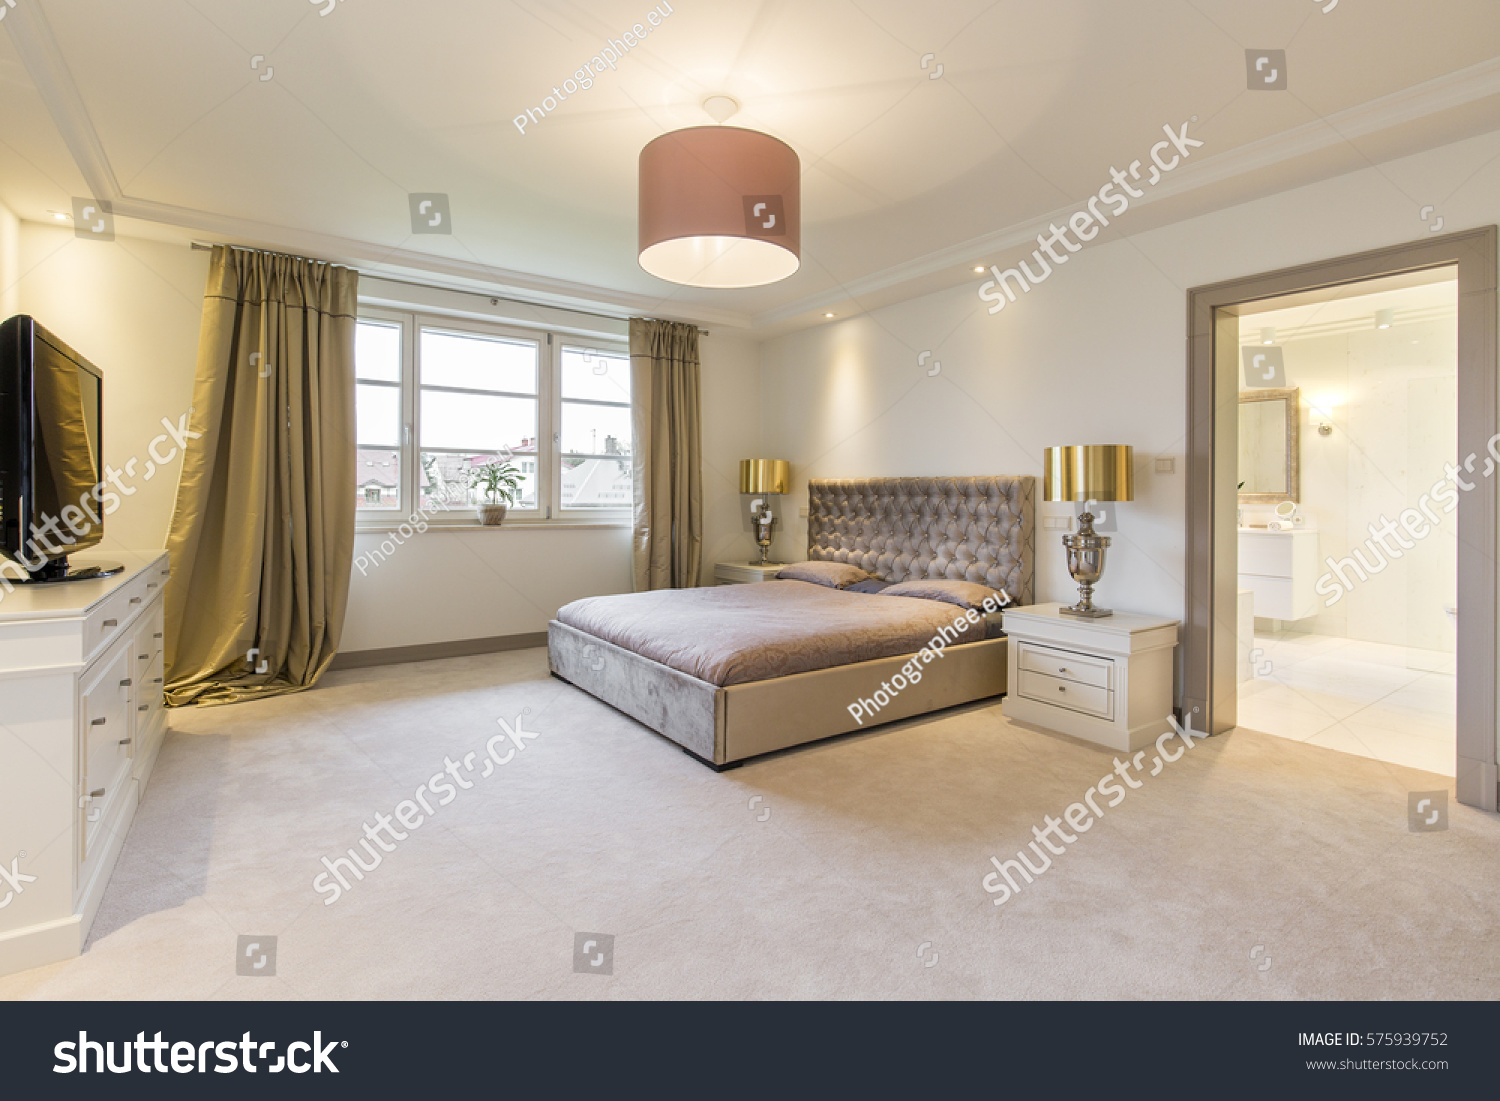 stock-photo-beige-minimalistic-bedroom-with-a-large-bed-and-golden-amenities-and-entry-to-bathroom-575939752